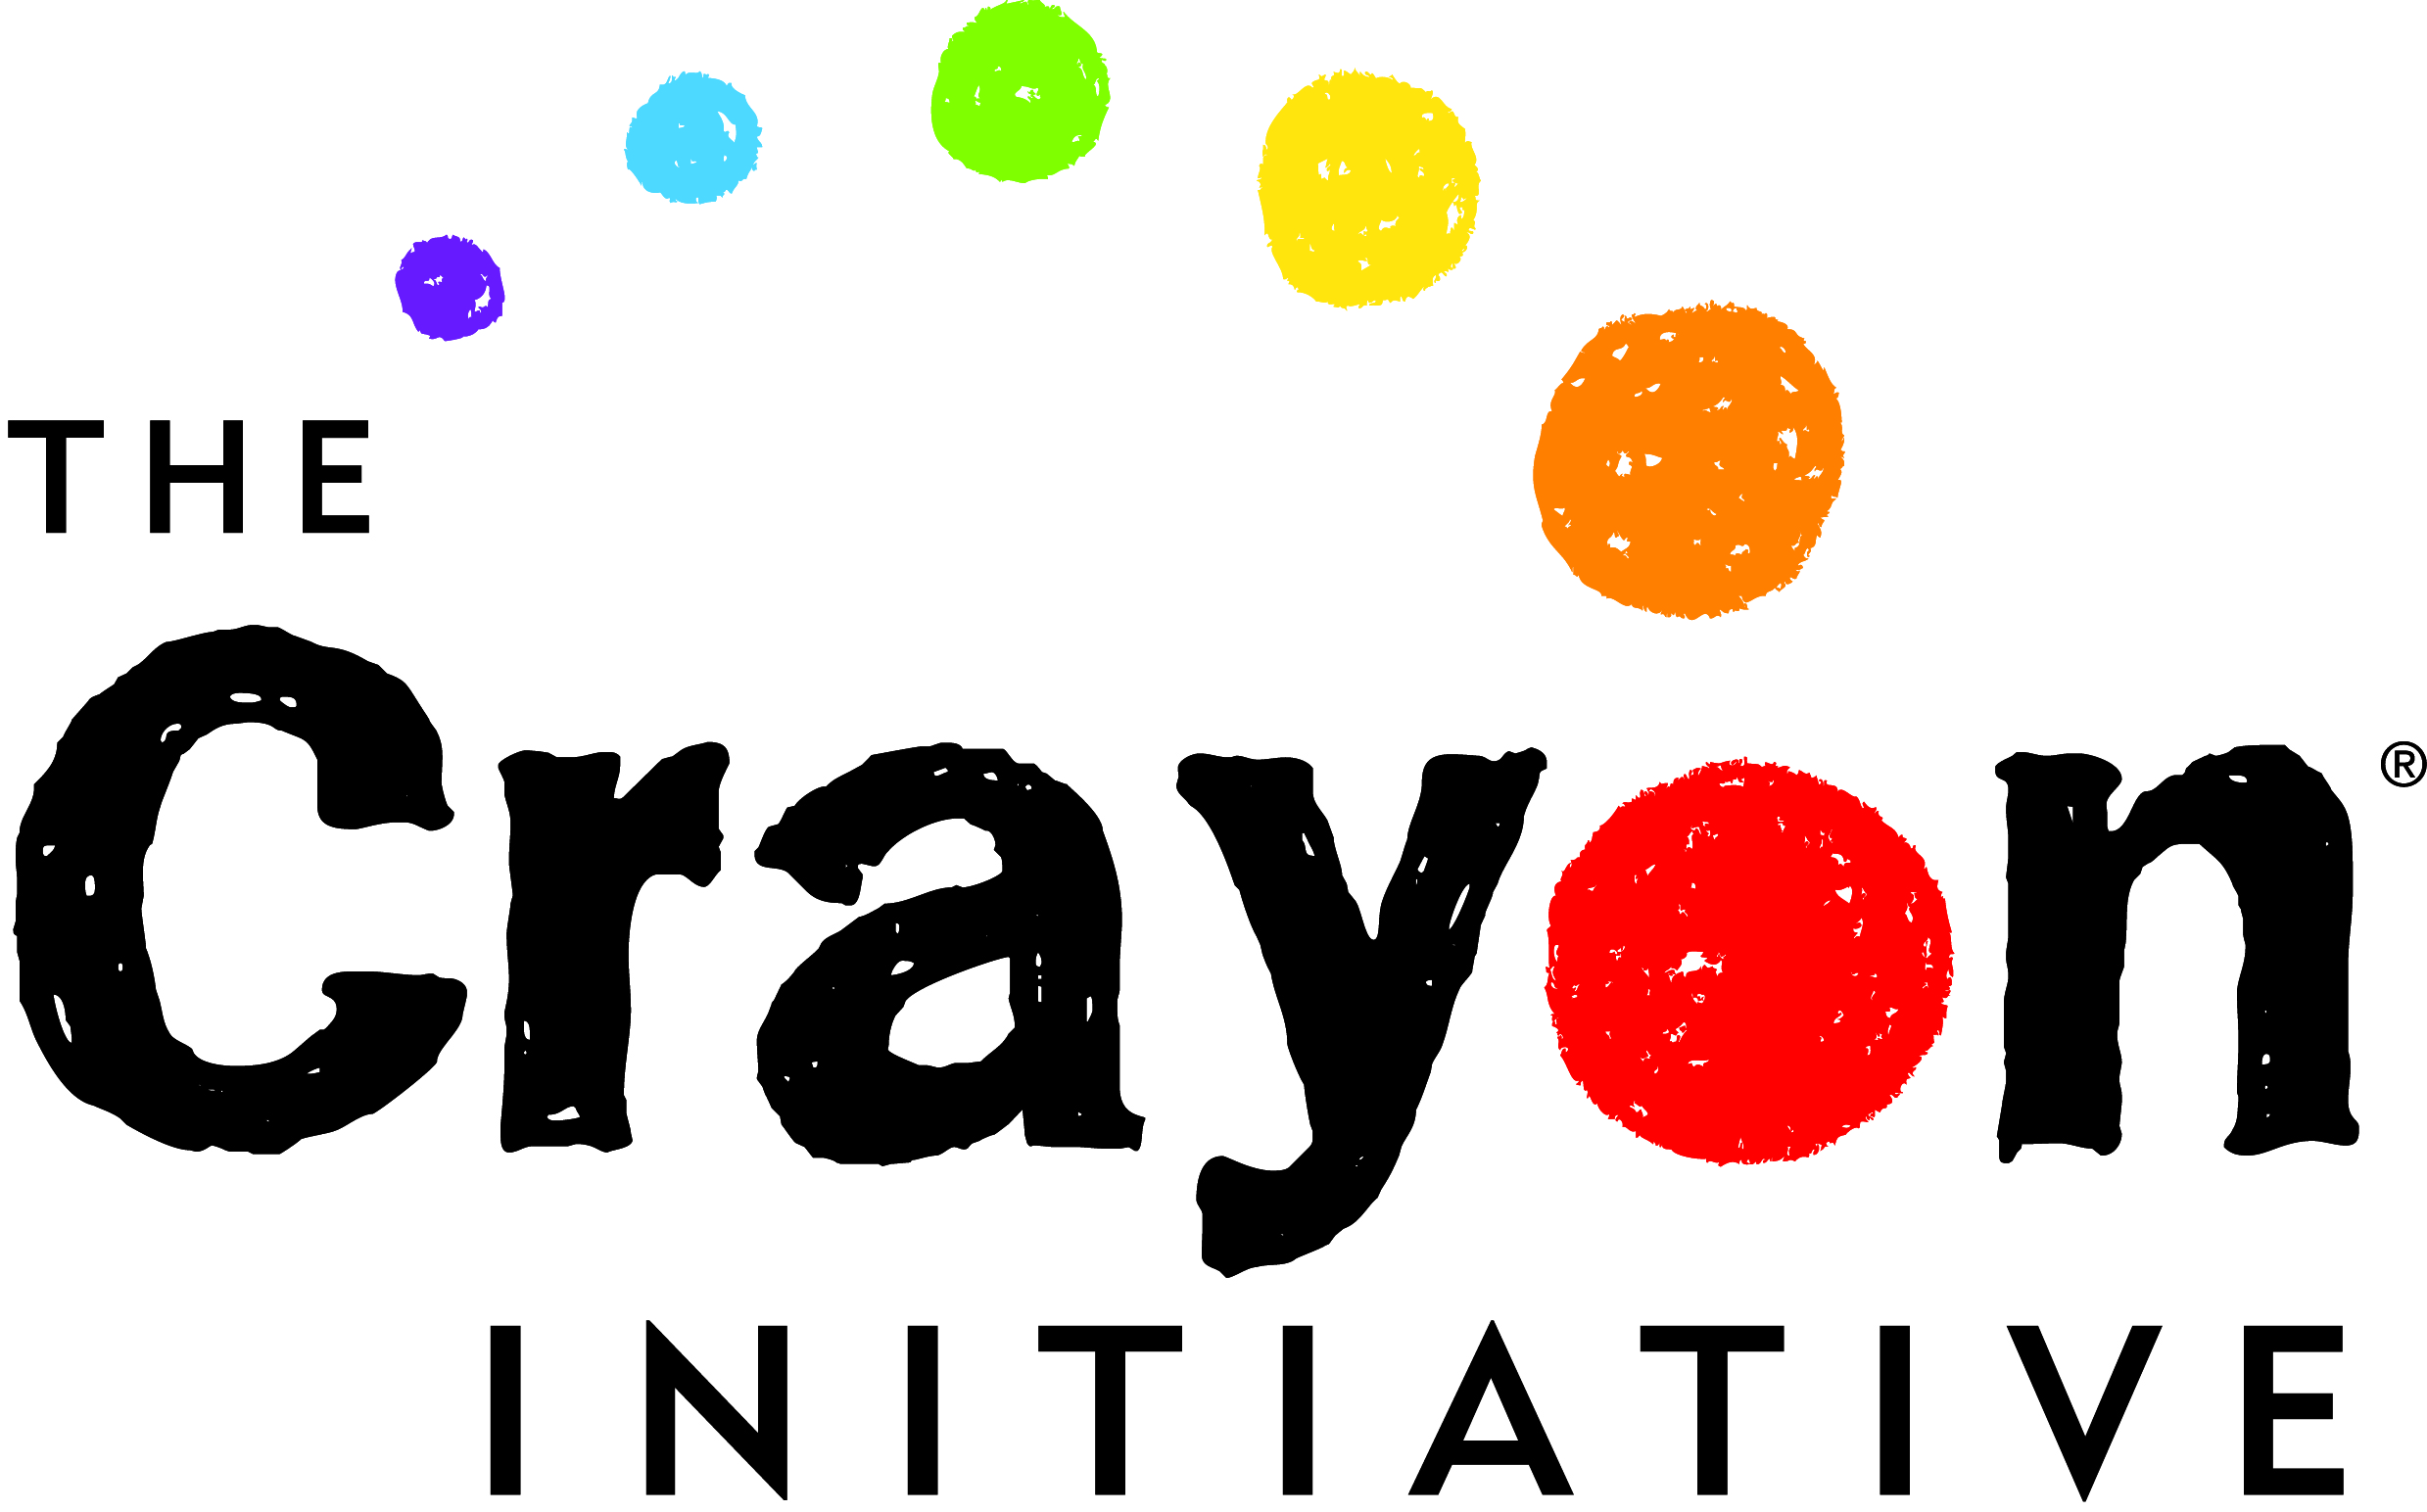 crayon initiative logo